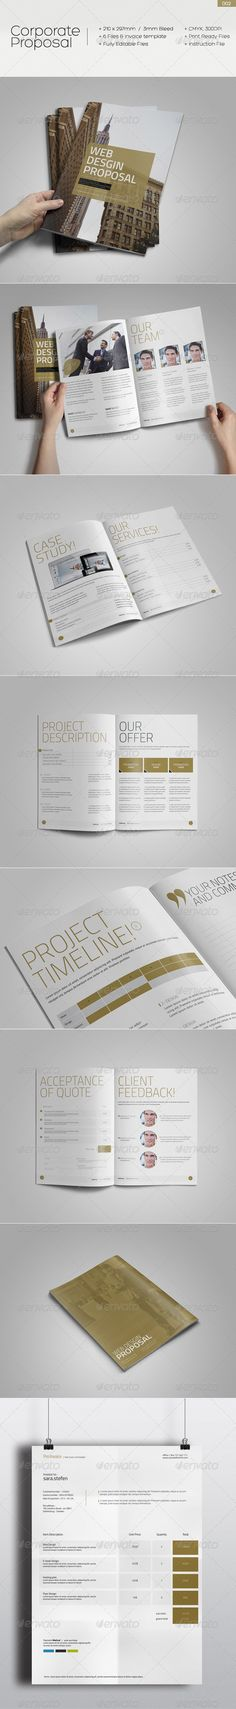 Project Proposal Template - V1 - Updated Project proposal - graphic design invoice sample